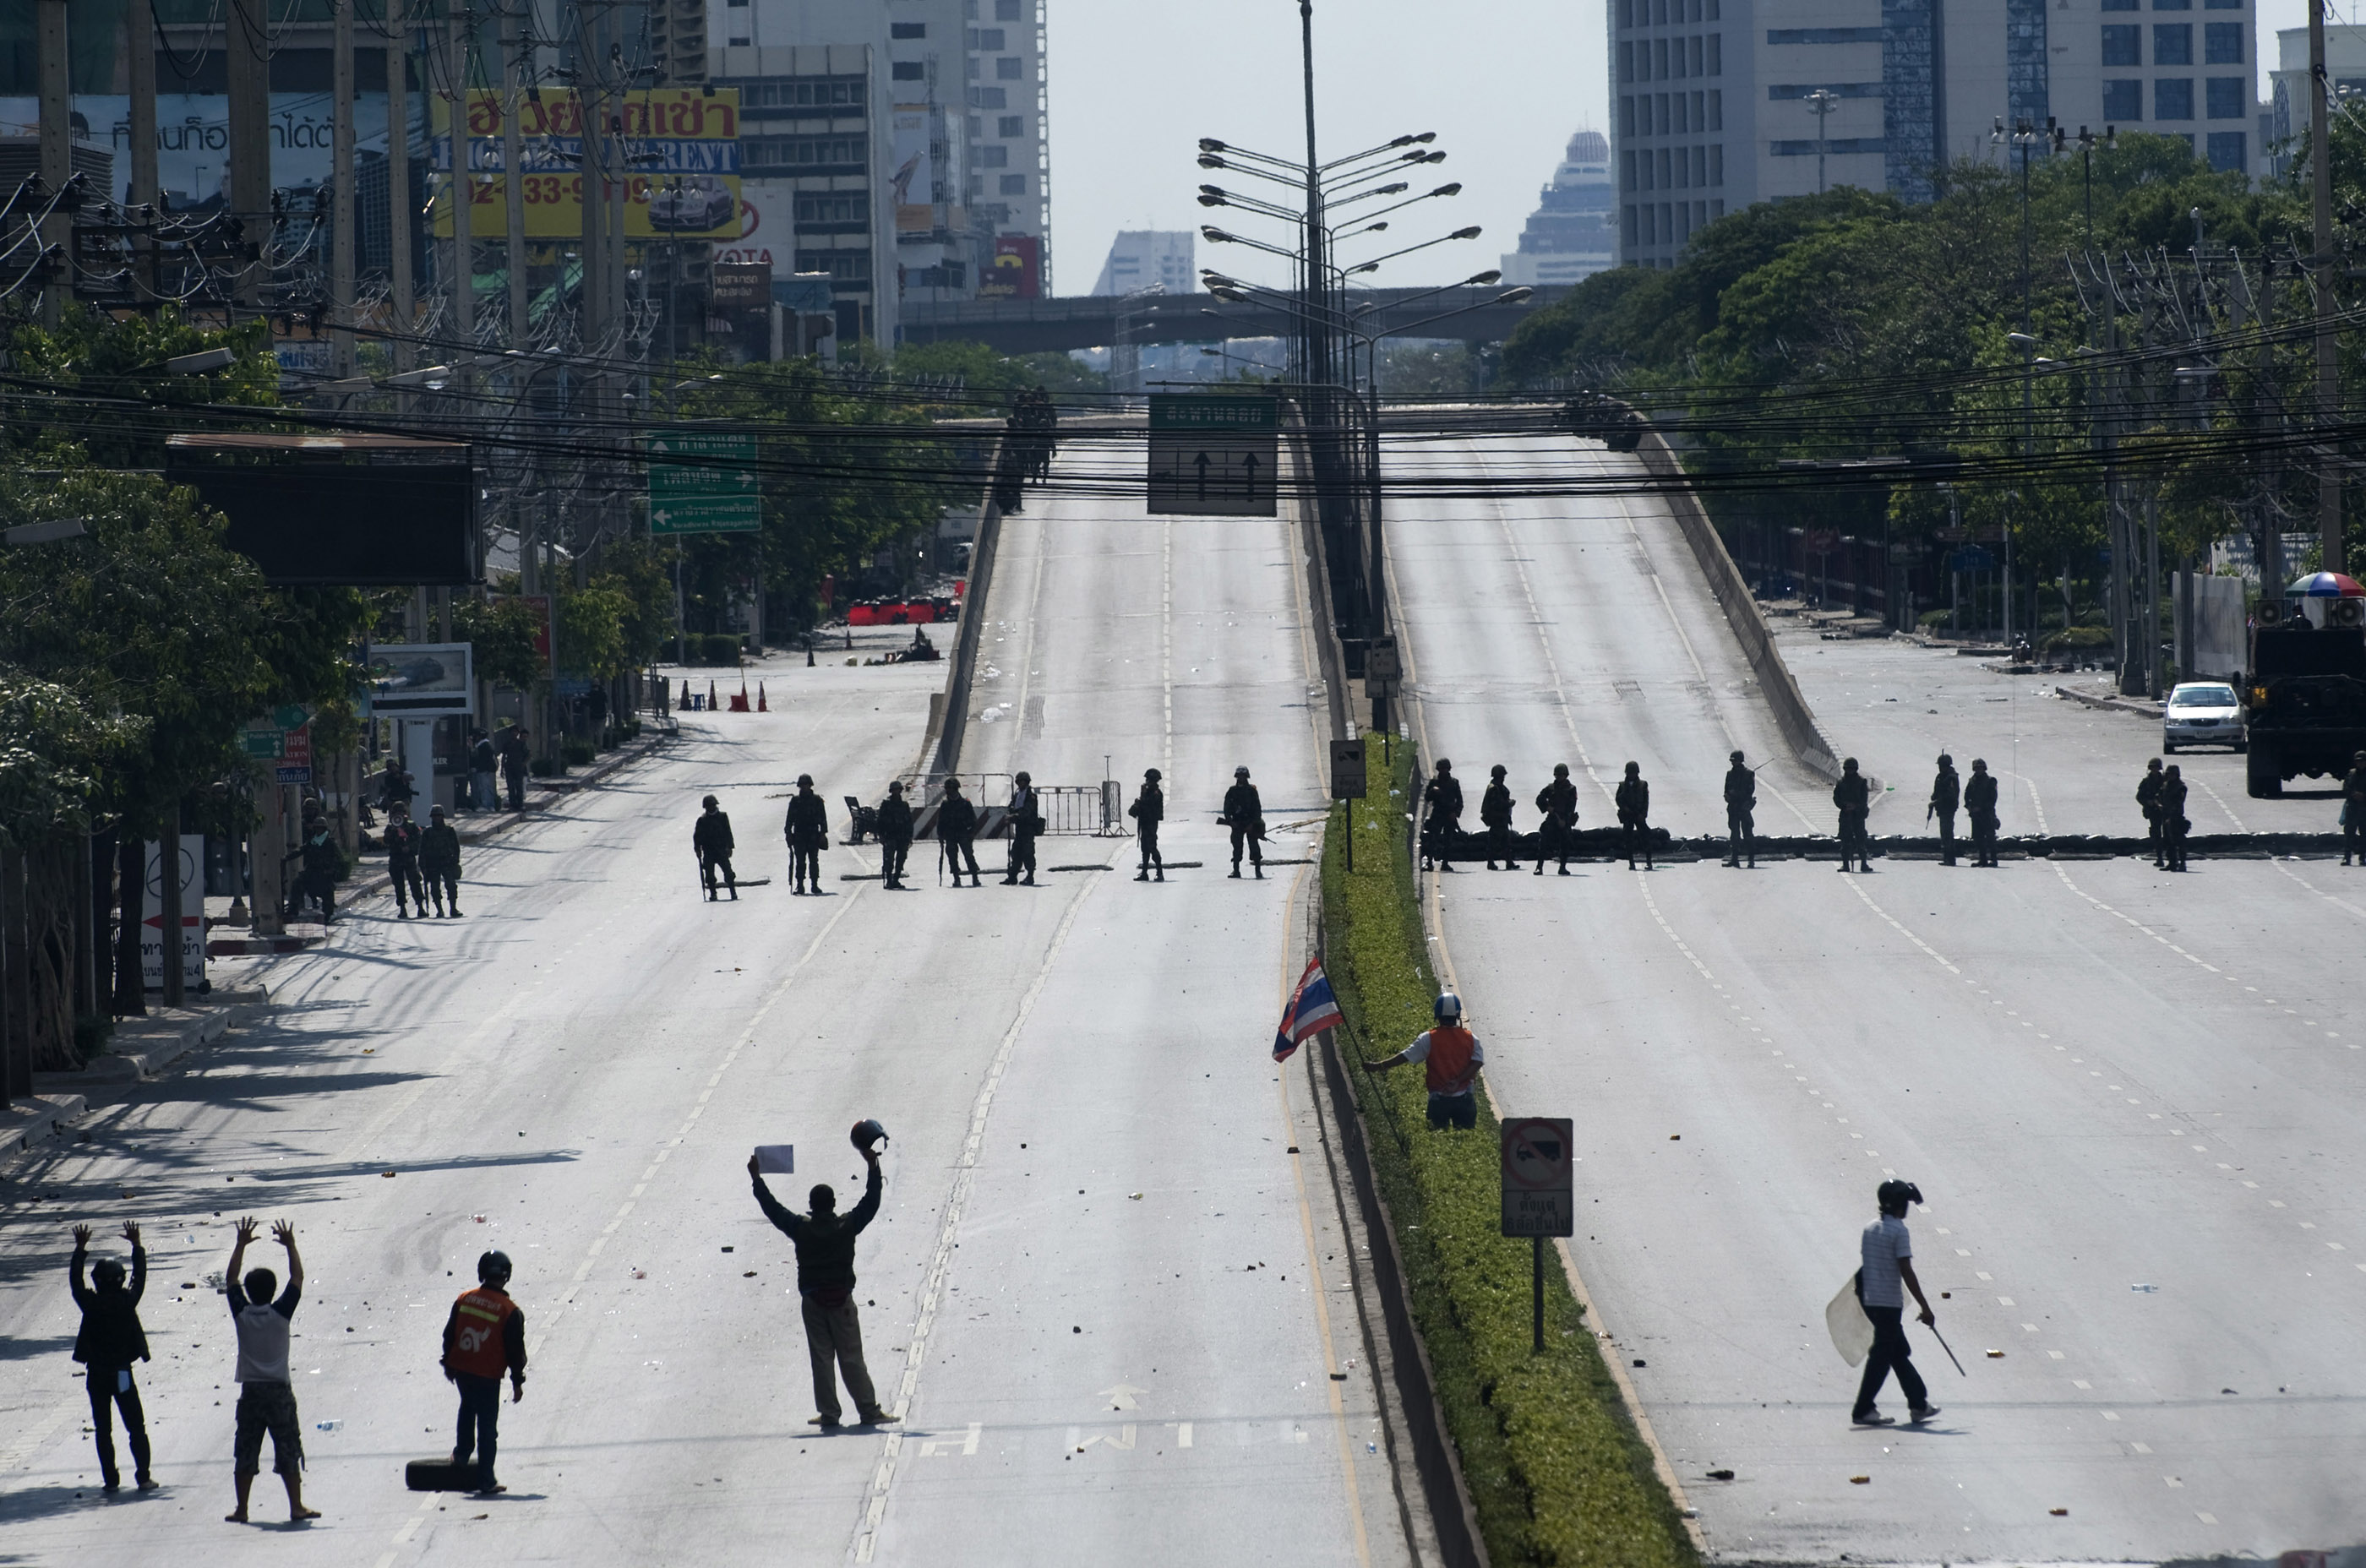 Rama IV Road in Bangkok is normally choked with traffic but roads were blocked by the military and protesters effectively shutting down the center of the city.